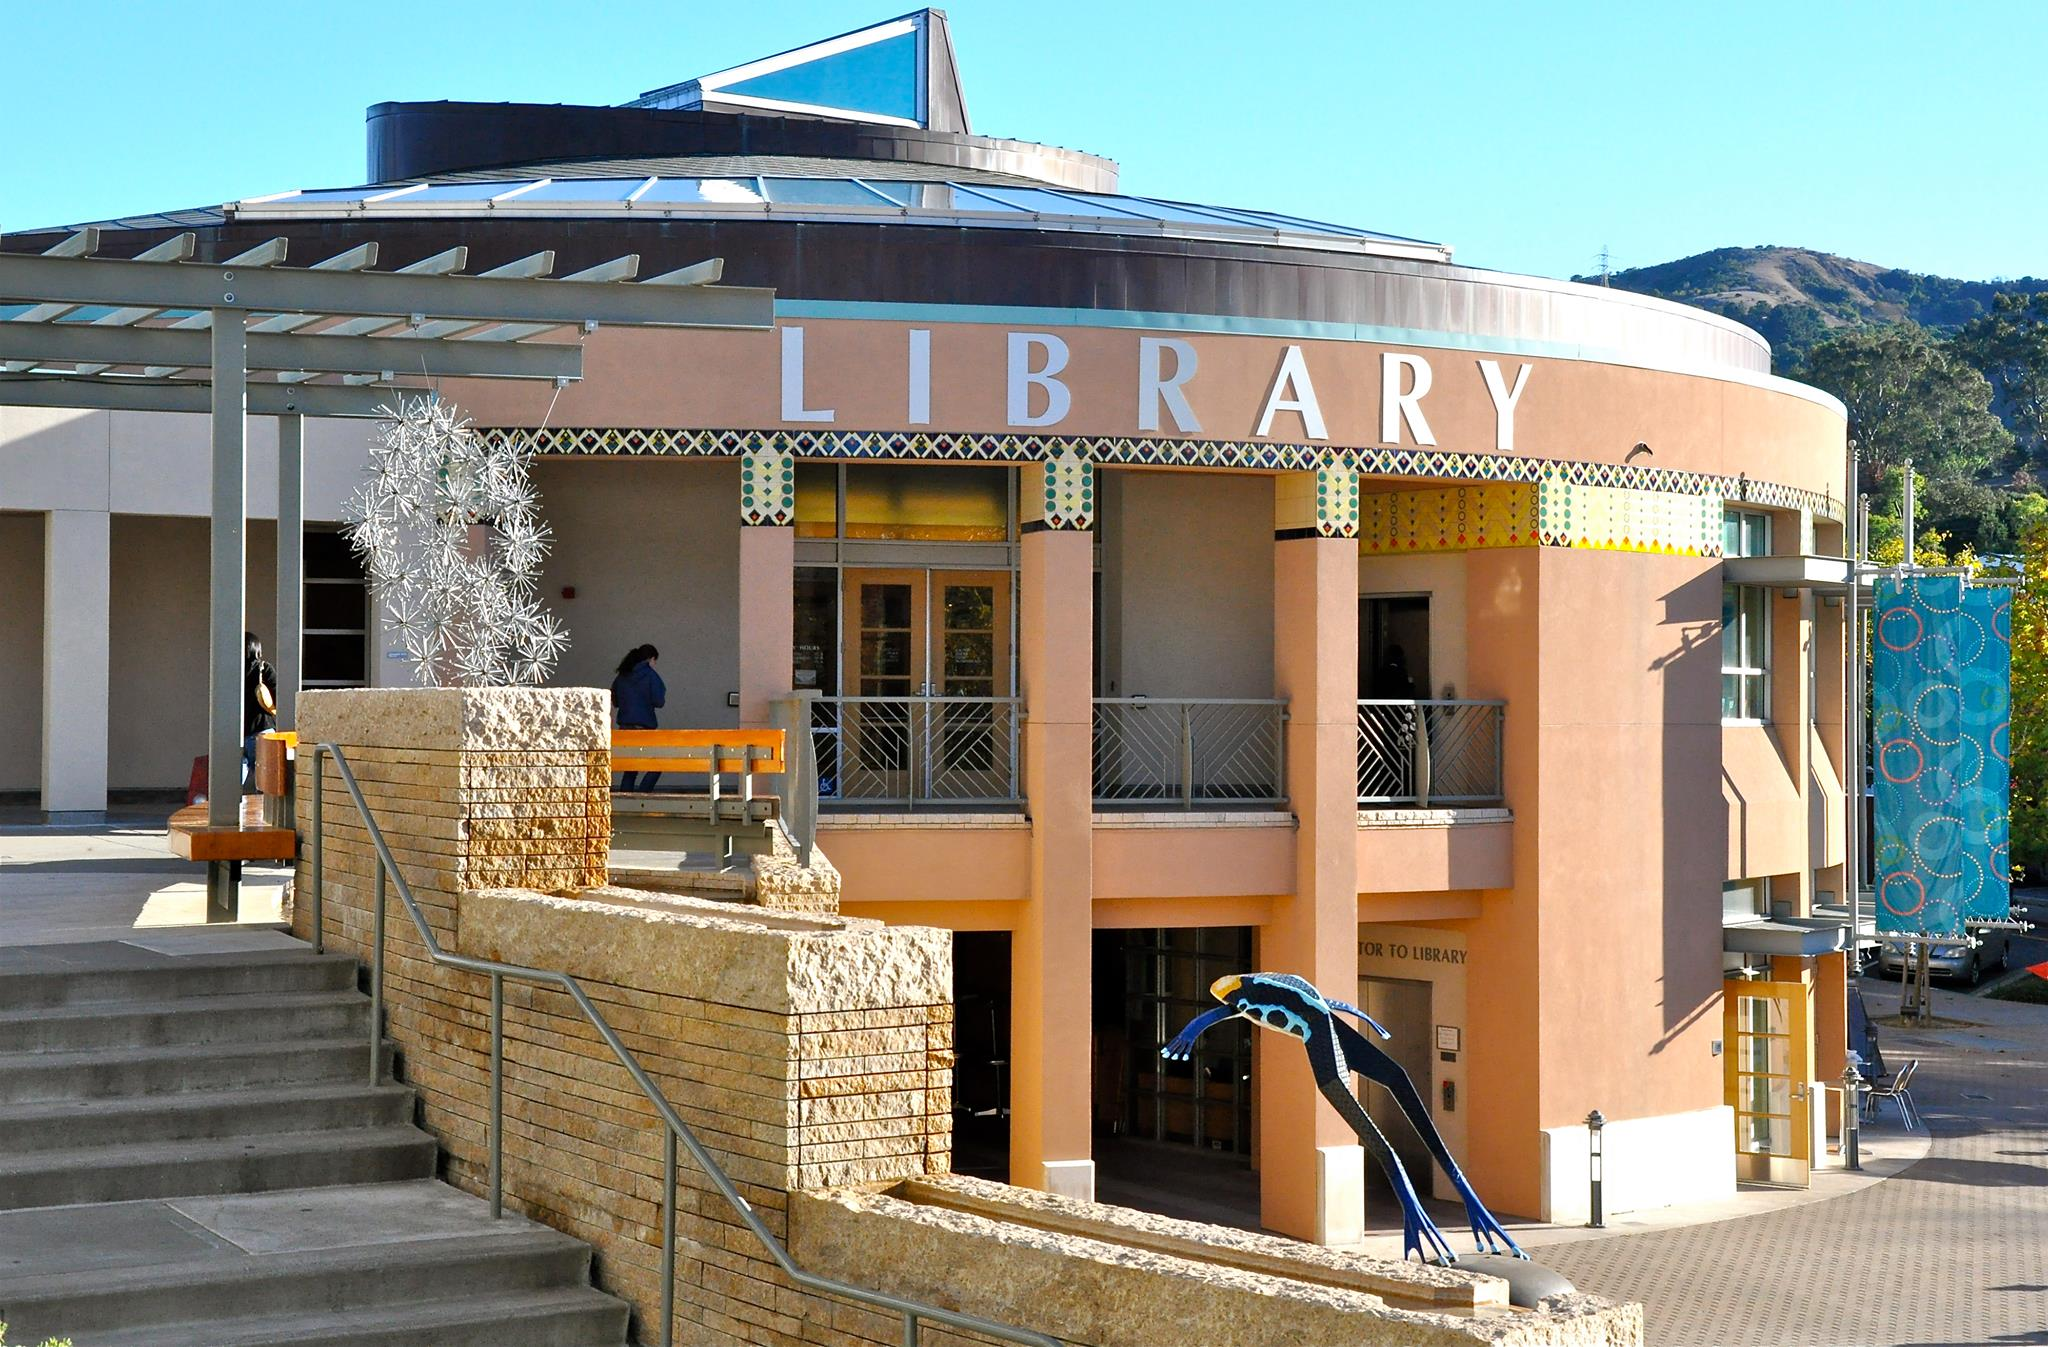 Orinda Library picture